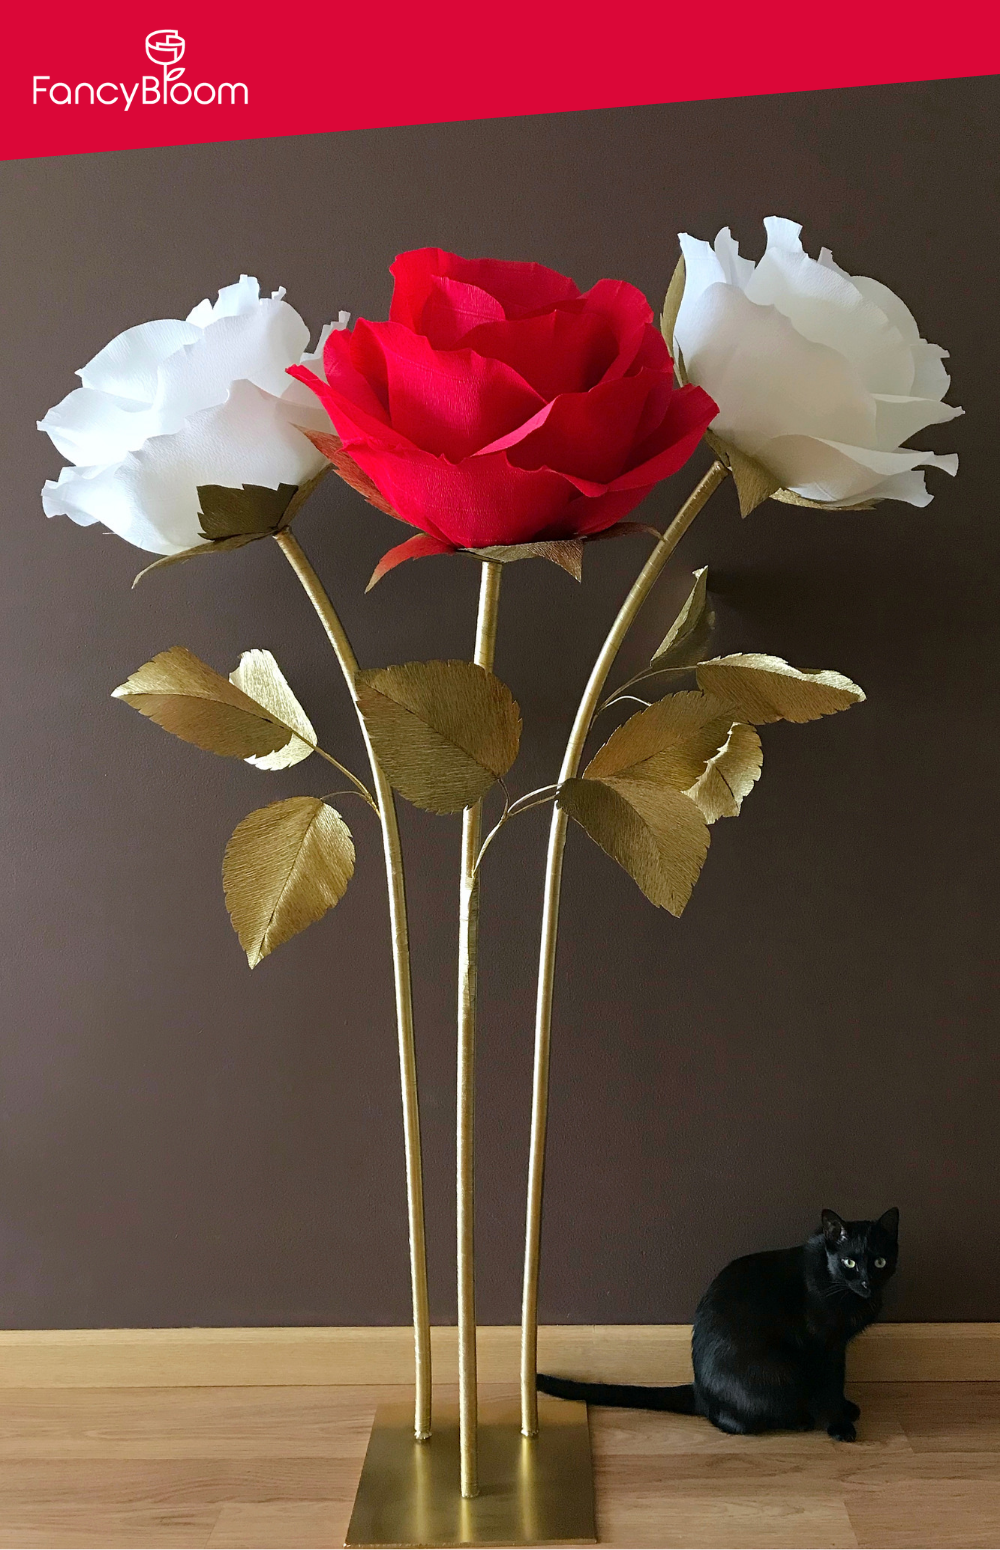 Giant Crepe Paper Roses  #crepepaperroses Gorgeous giant paper roses in Christmas/Holidays classic colors - red, white and gold - from FancyBloom. Christmas paper flowers, paper craft, paper flowers craft, paper rose, paper roses, crepe paper roses, how to make a giant paper rose, paper roses diy, giant paper roses, crepe paper flowers, crepe paper, giant crepe paper flowers, crepe paper flower tutorial, crepe paper rose, crepe paper crafts, crepe paper diy, crepe paper Italian, crepe paper idea #crepepaperroses